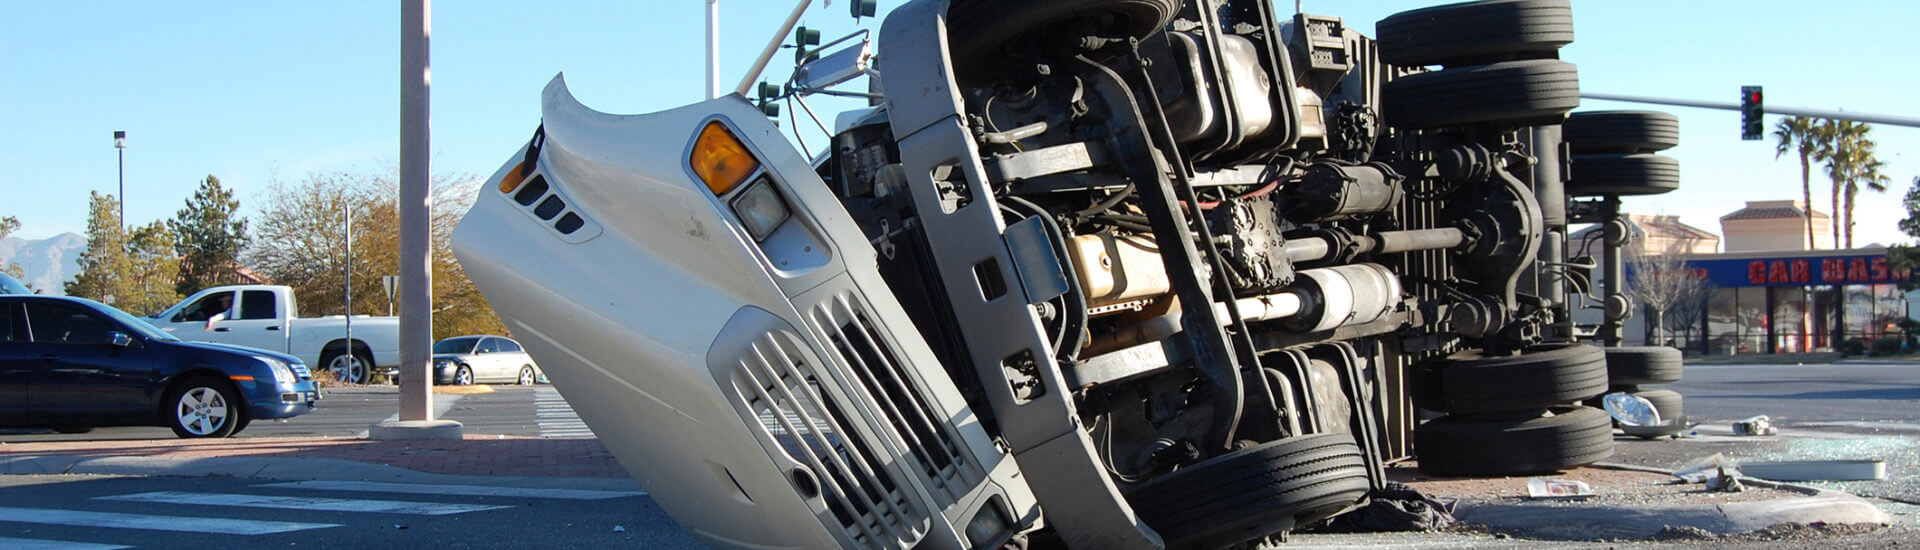 Overturned tractor trailer at a busy intersection